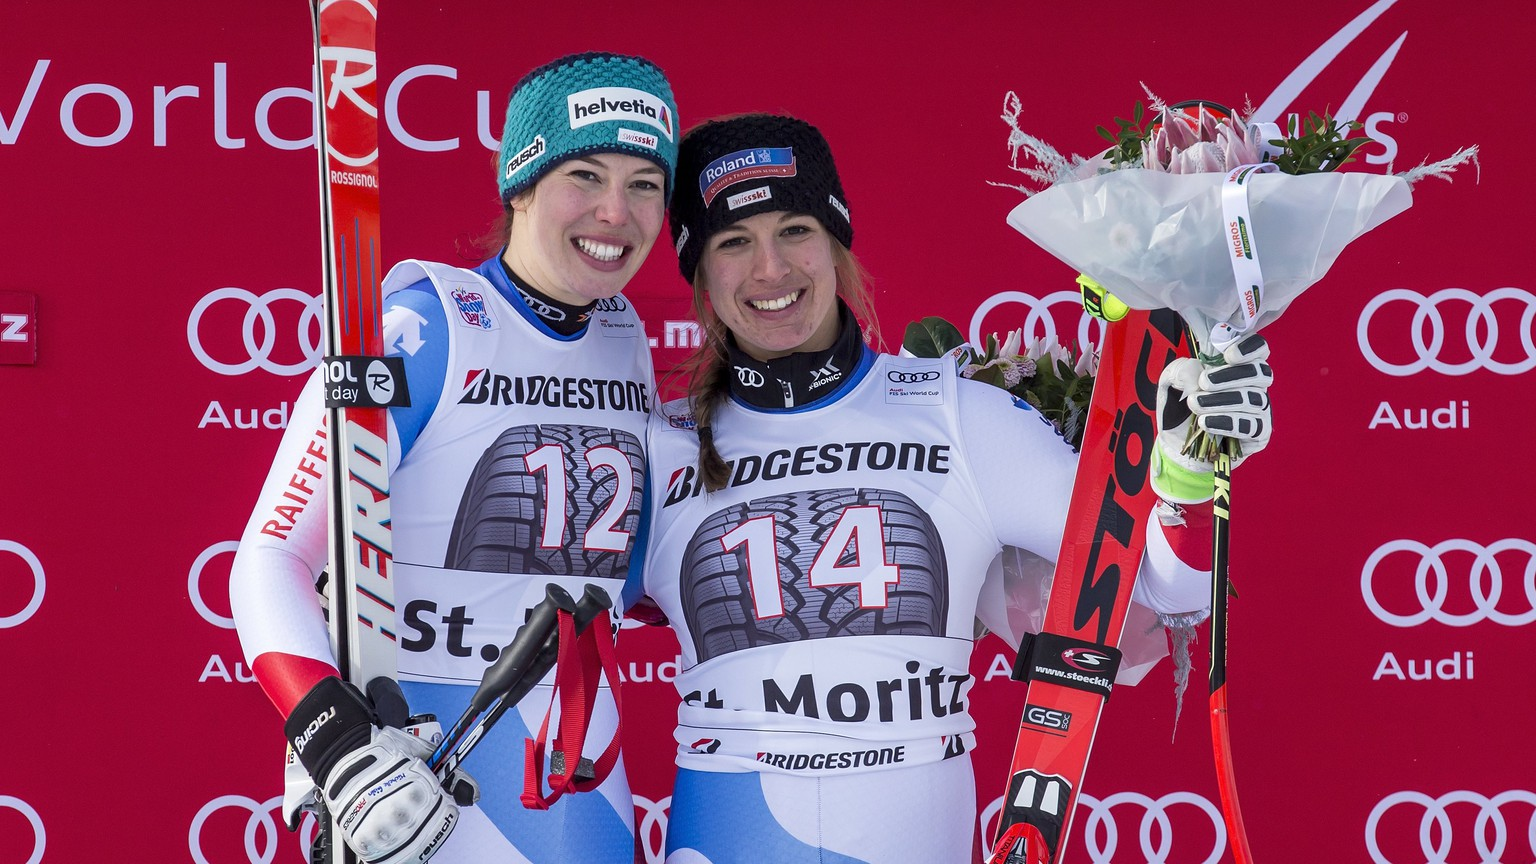 epa06378620 Jasmine Flury, of Switzerland, right, first place, and  Michelle Gisin, left, of Switzerland, second place, celebrate on the podium in the finish area at the women's Super-G race at the FIS Alpine Ski World Cup, in St. Moritz, Switzerland, Saturday, December 9, 2017.  EPA/ALEXANDRA WEY